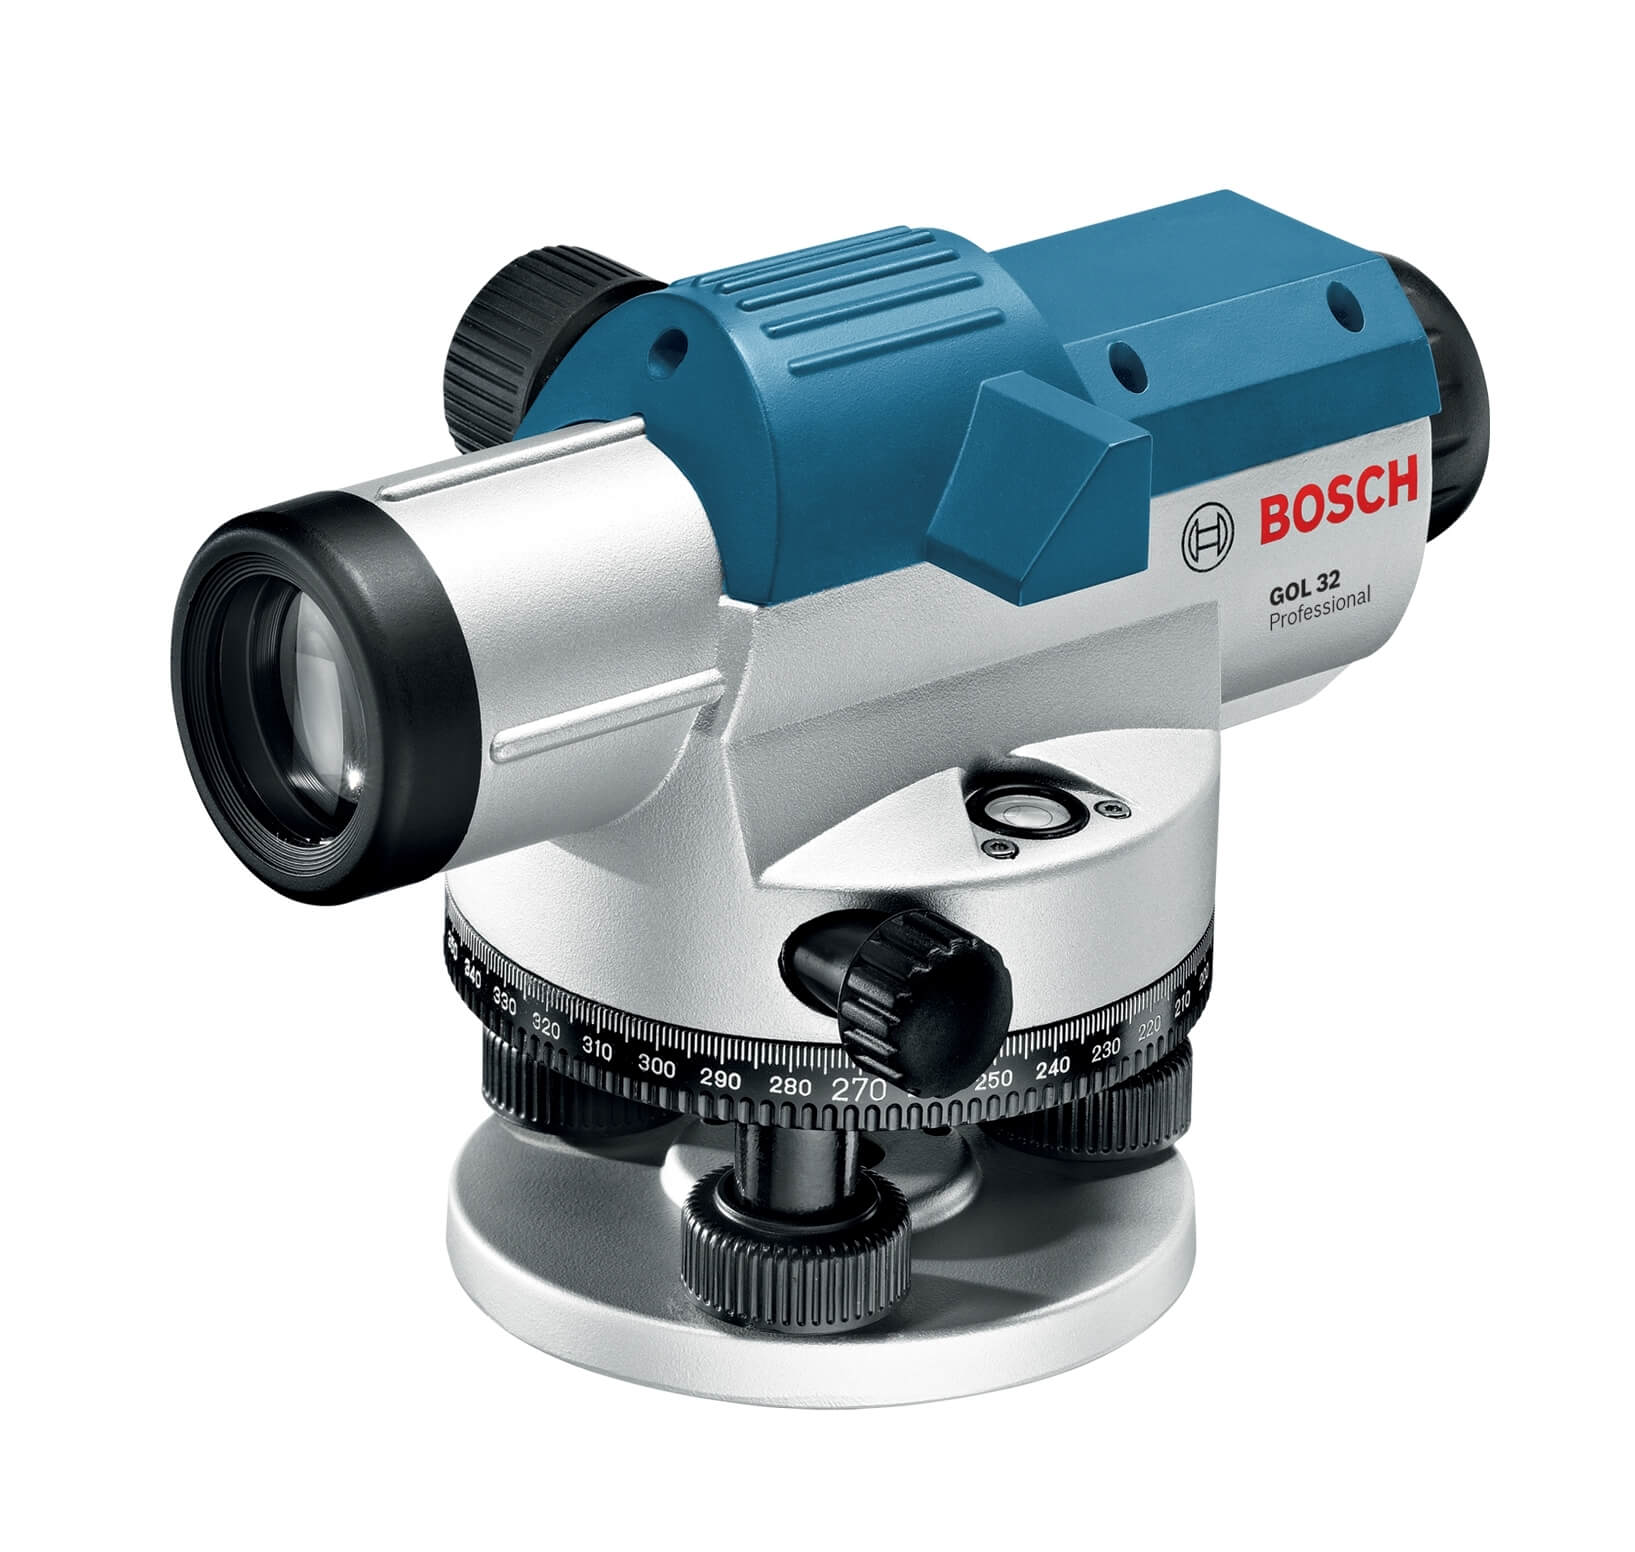 Bosch 32X Automatic Optical Level (GOL32) ES5151